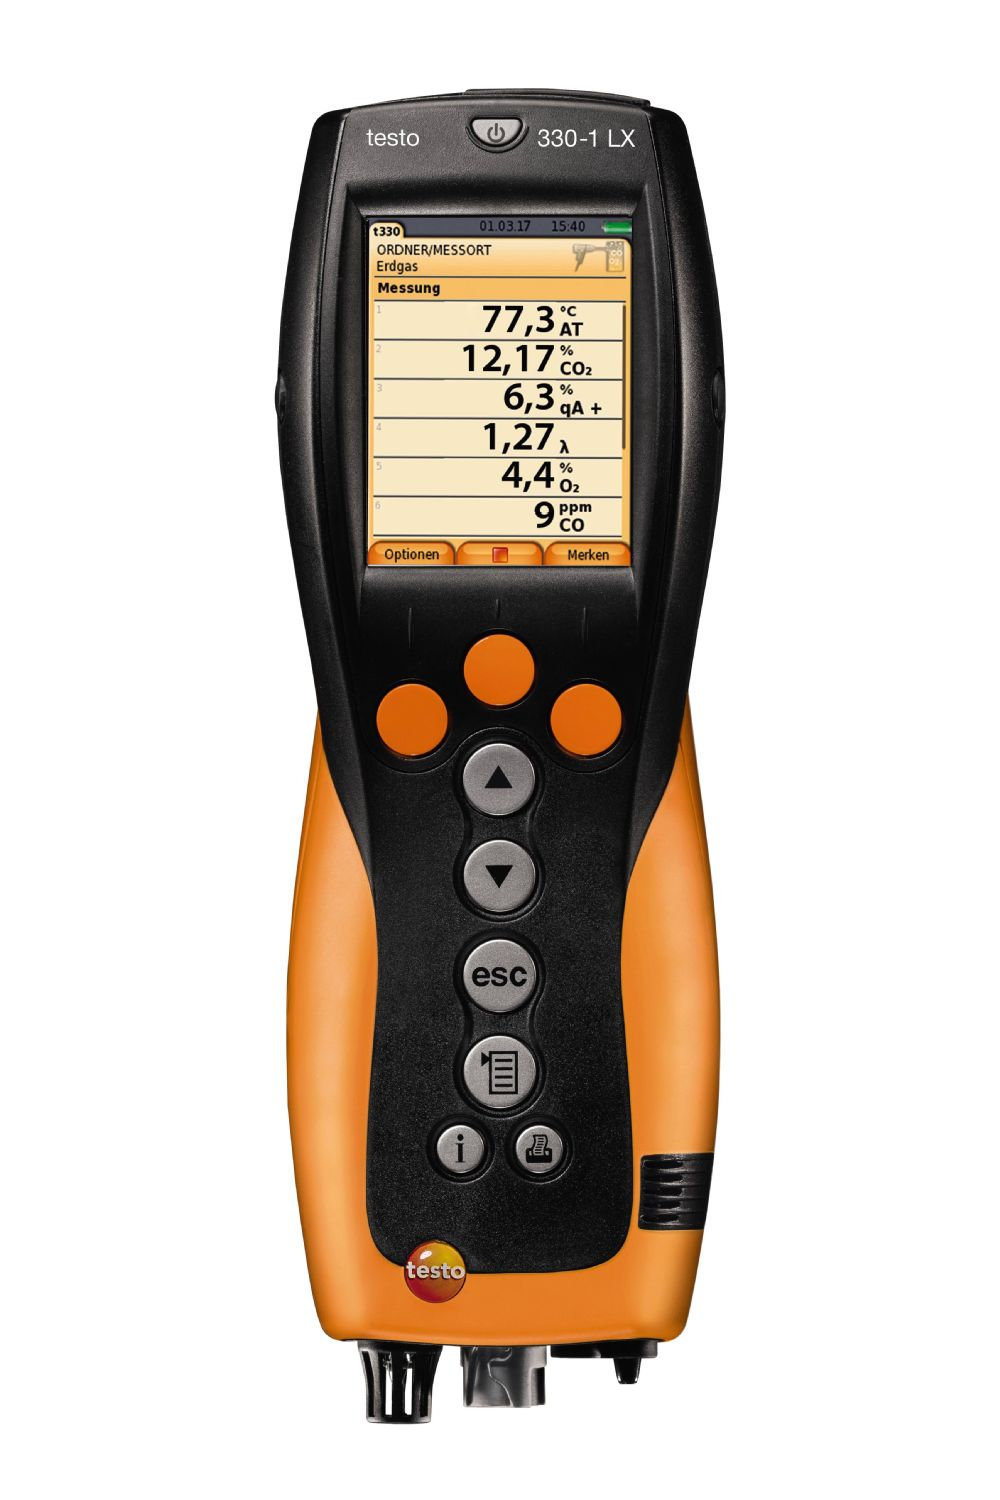 testo 330-1 LX - essential Kit